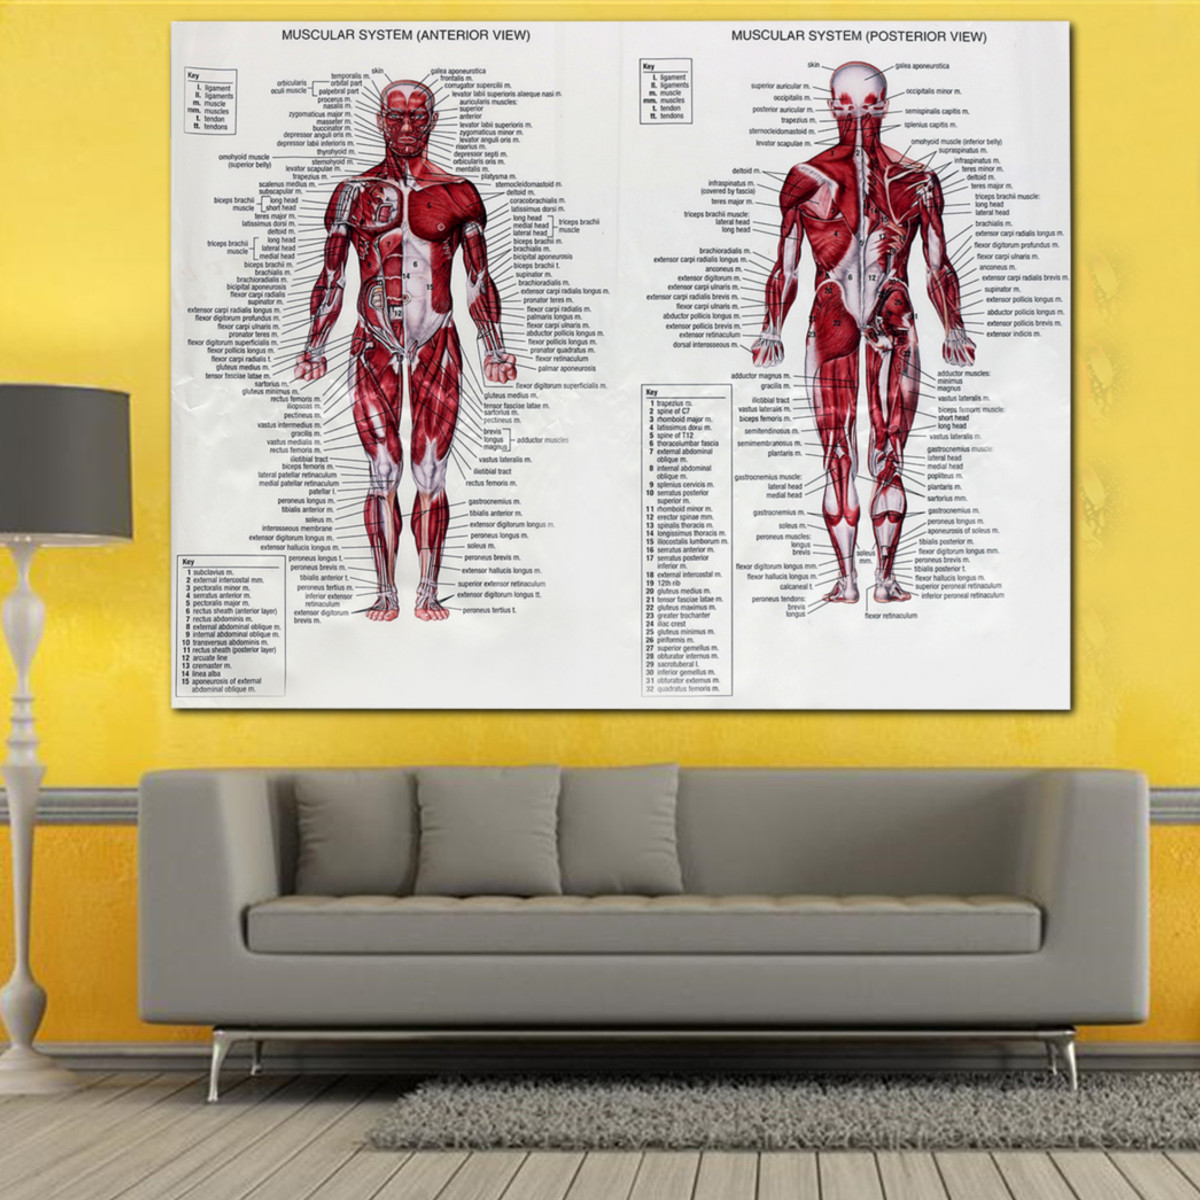 New 60x80cm Muscle System Poster Silk Fabric Anatomy Chart Human ...